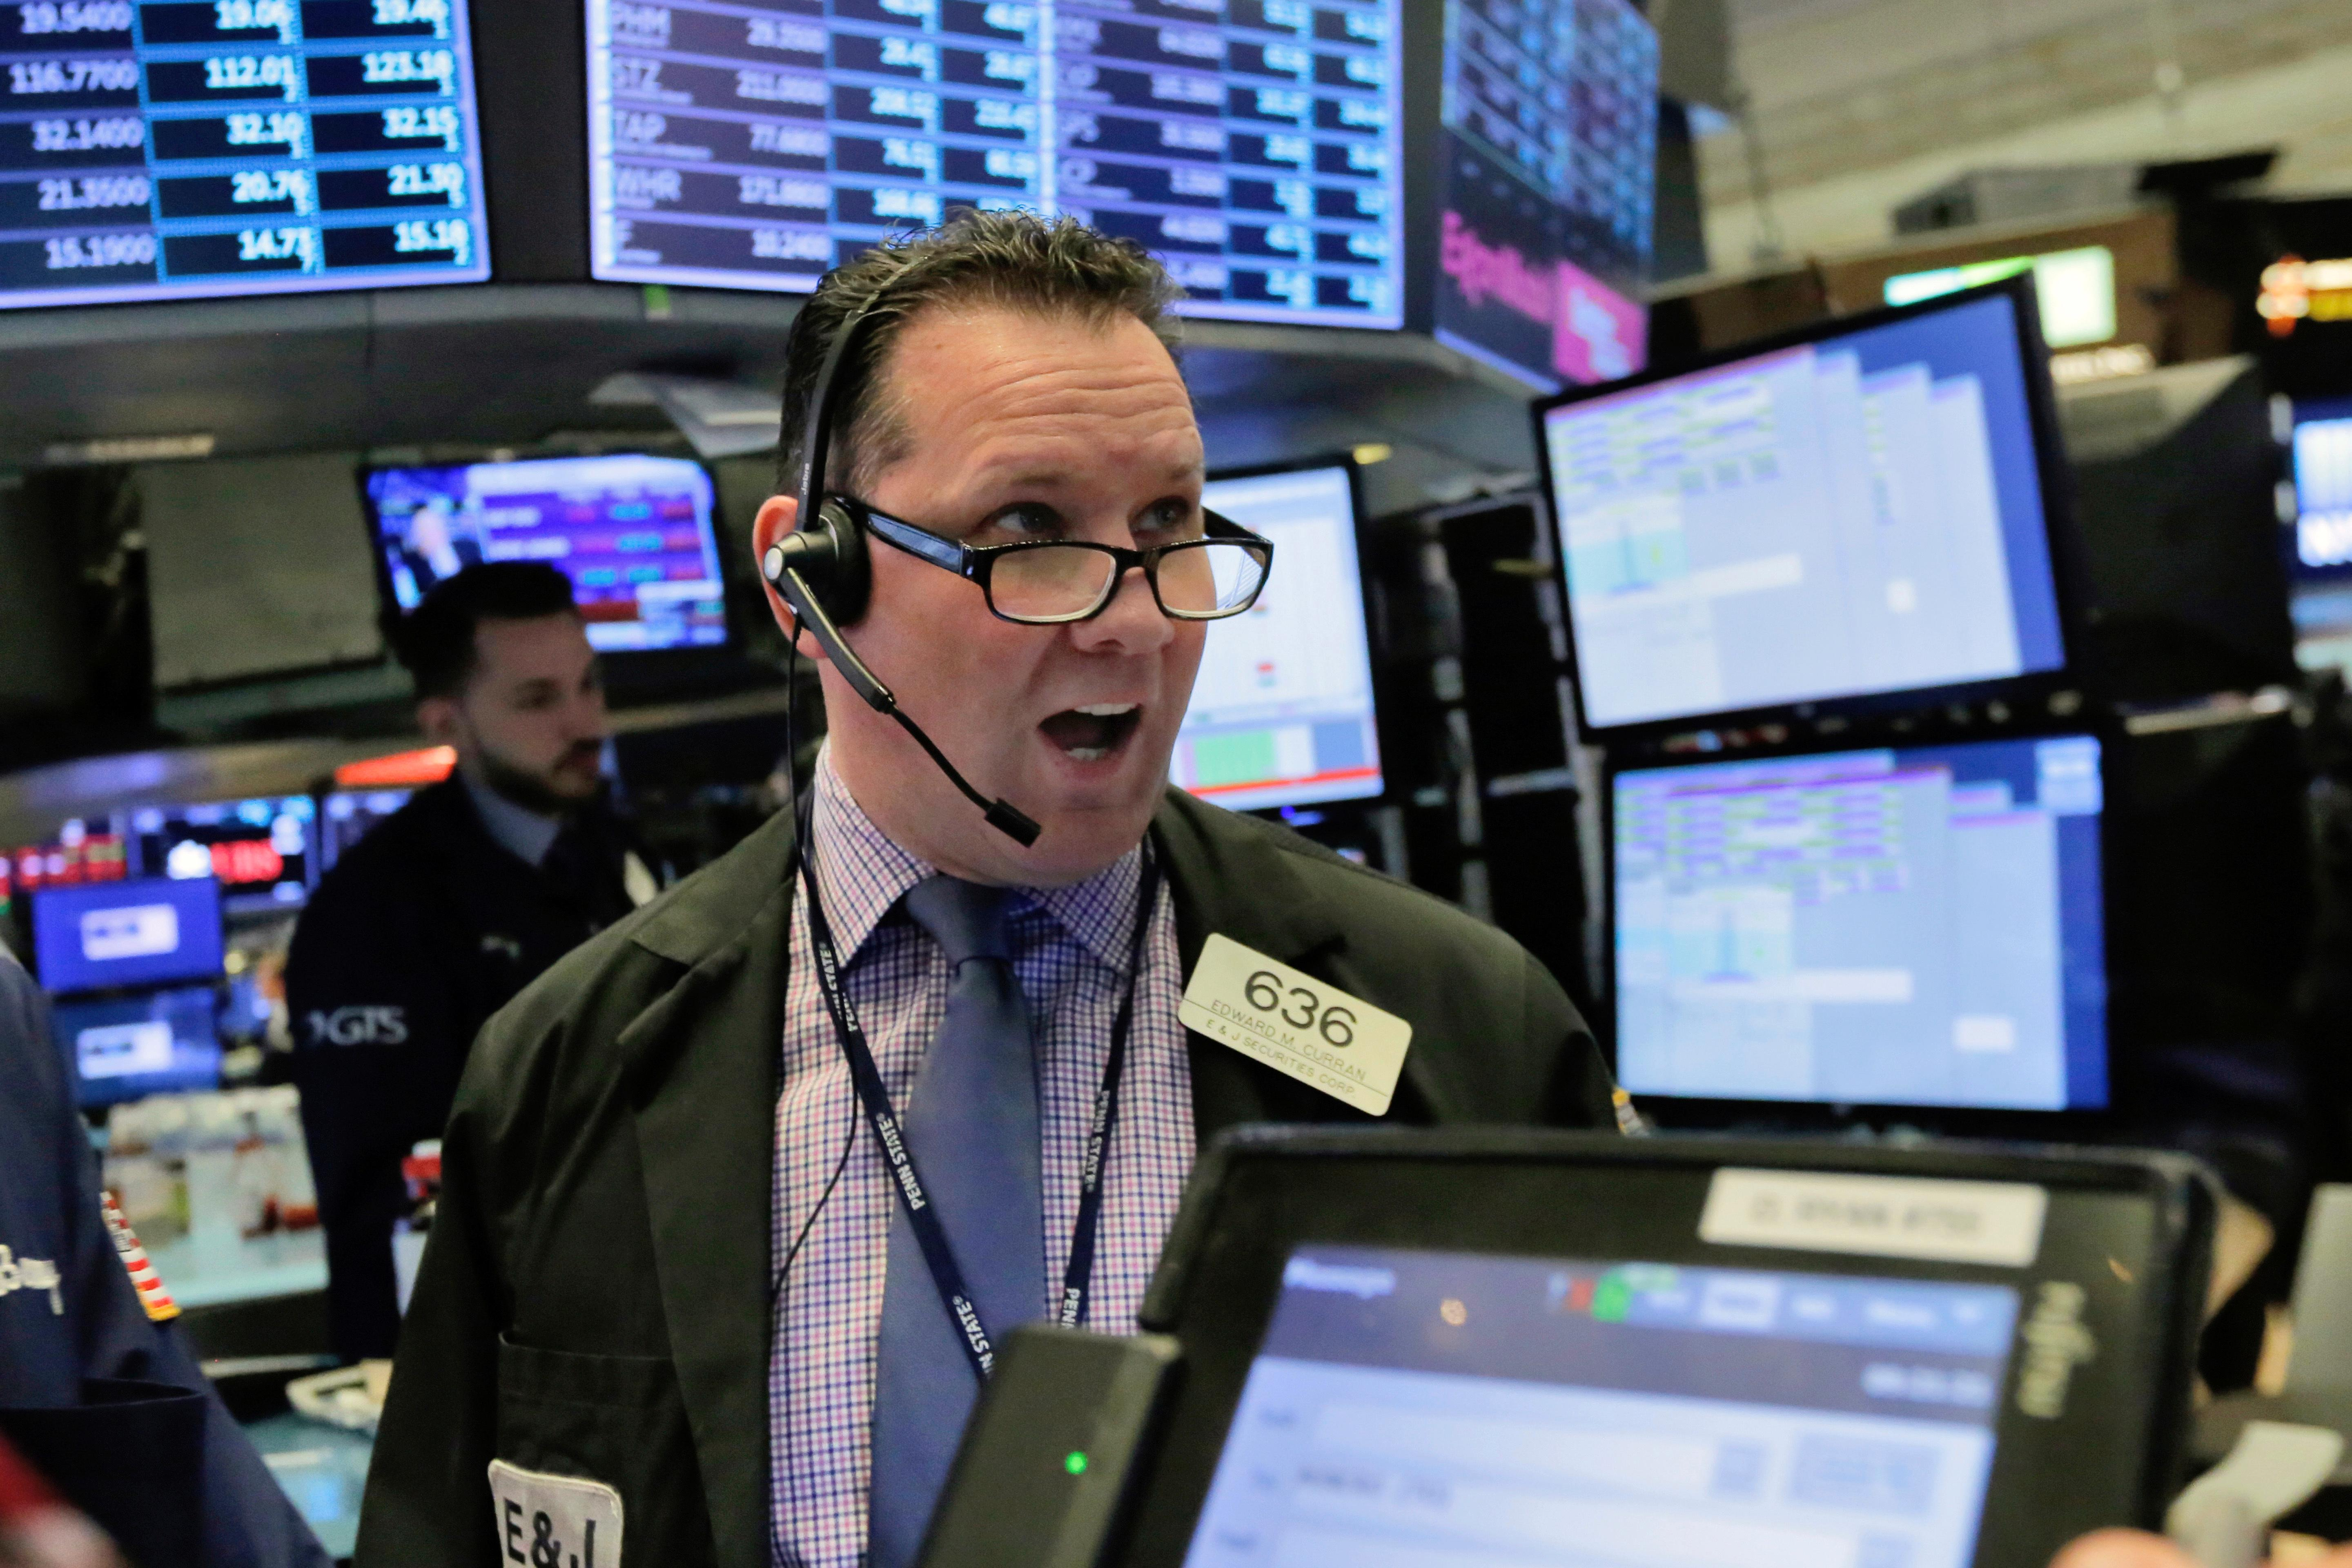 Trader Edward Curran works on the floor of the New York Stock Exchange, Tuesday, Feb. 6, 2018. The Dow Jones industrial average fell as much as 500 points in early trading, bringing the index down 10 percent from the record high it reached on Jan. 26. The DJIA quickly recovered much of that loss. (AP Photo/Richard Drew)